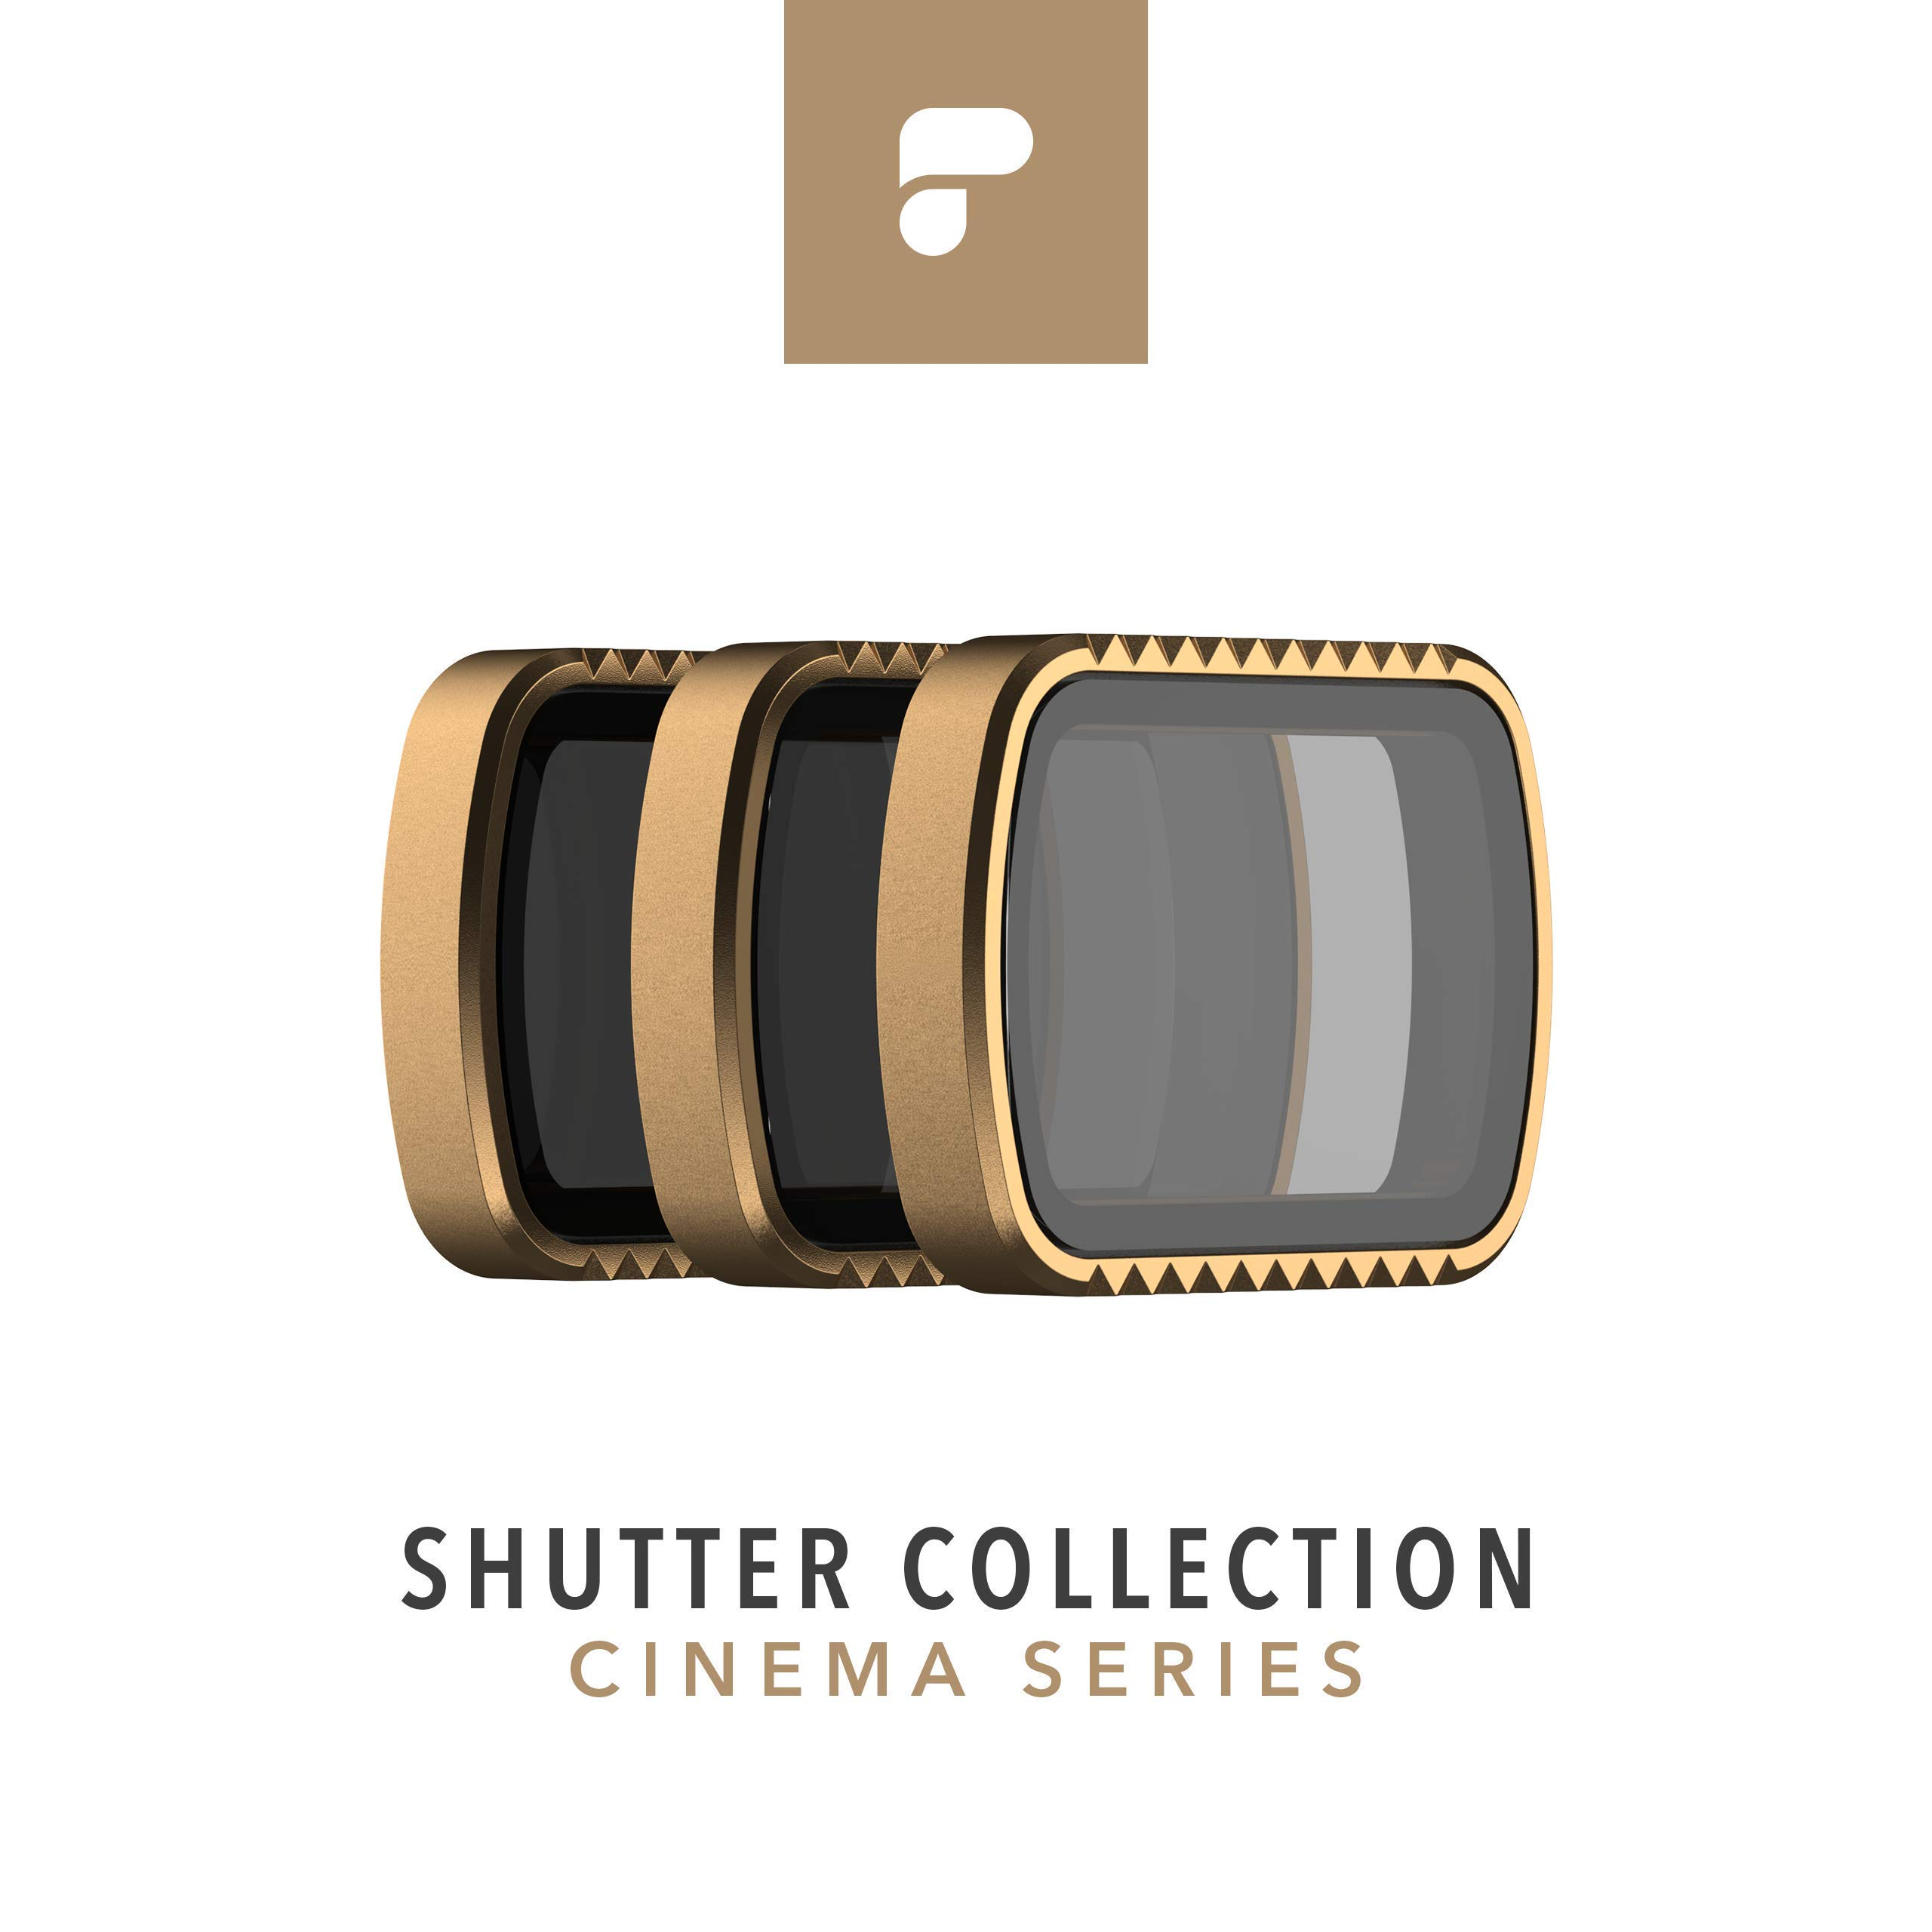 PolarPro Cinema Series Filter 3-Pack - Shutter Collection for DJI Osmo Pocket